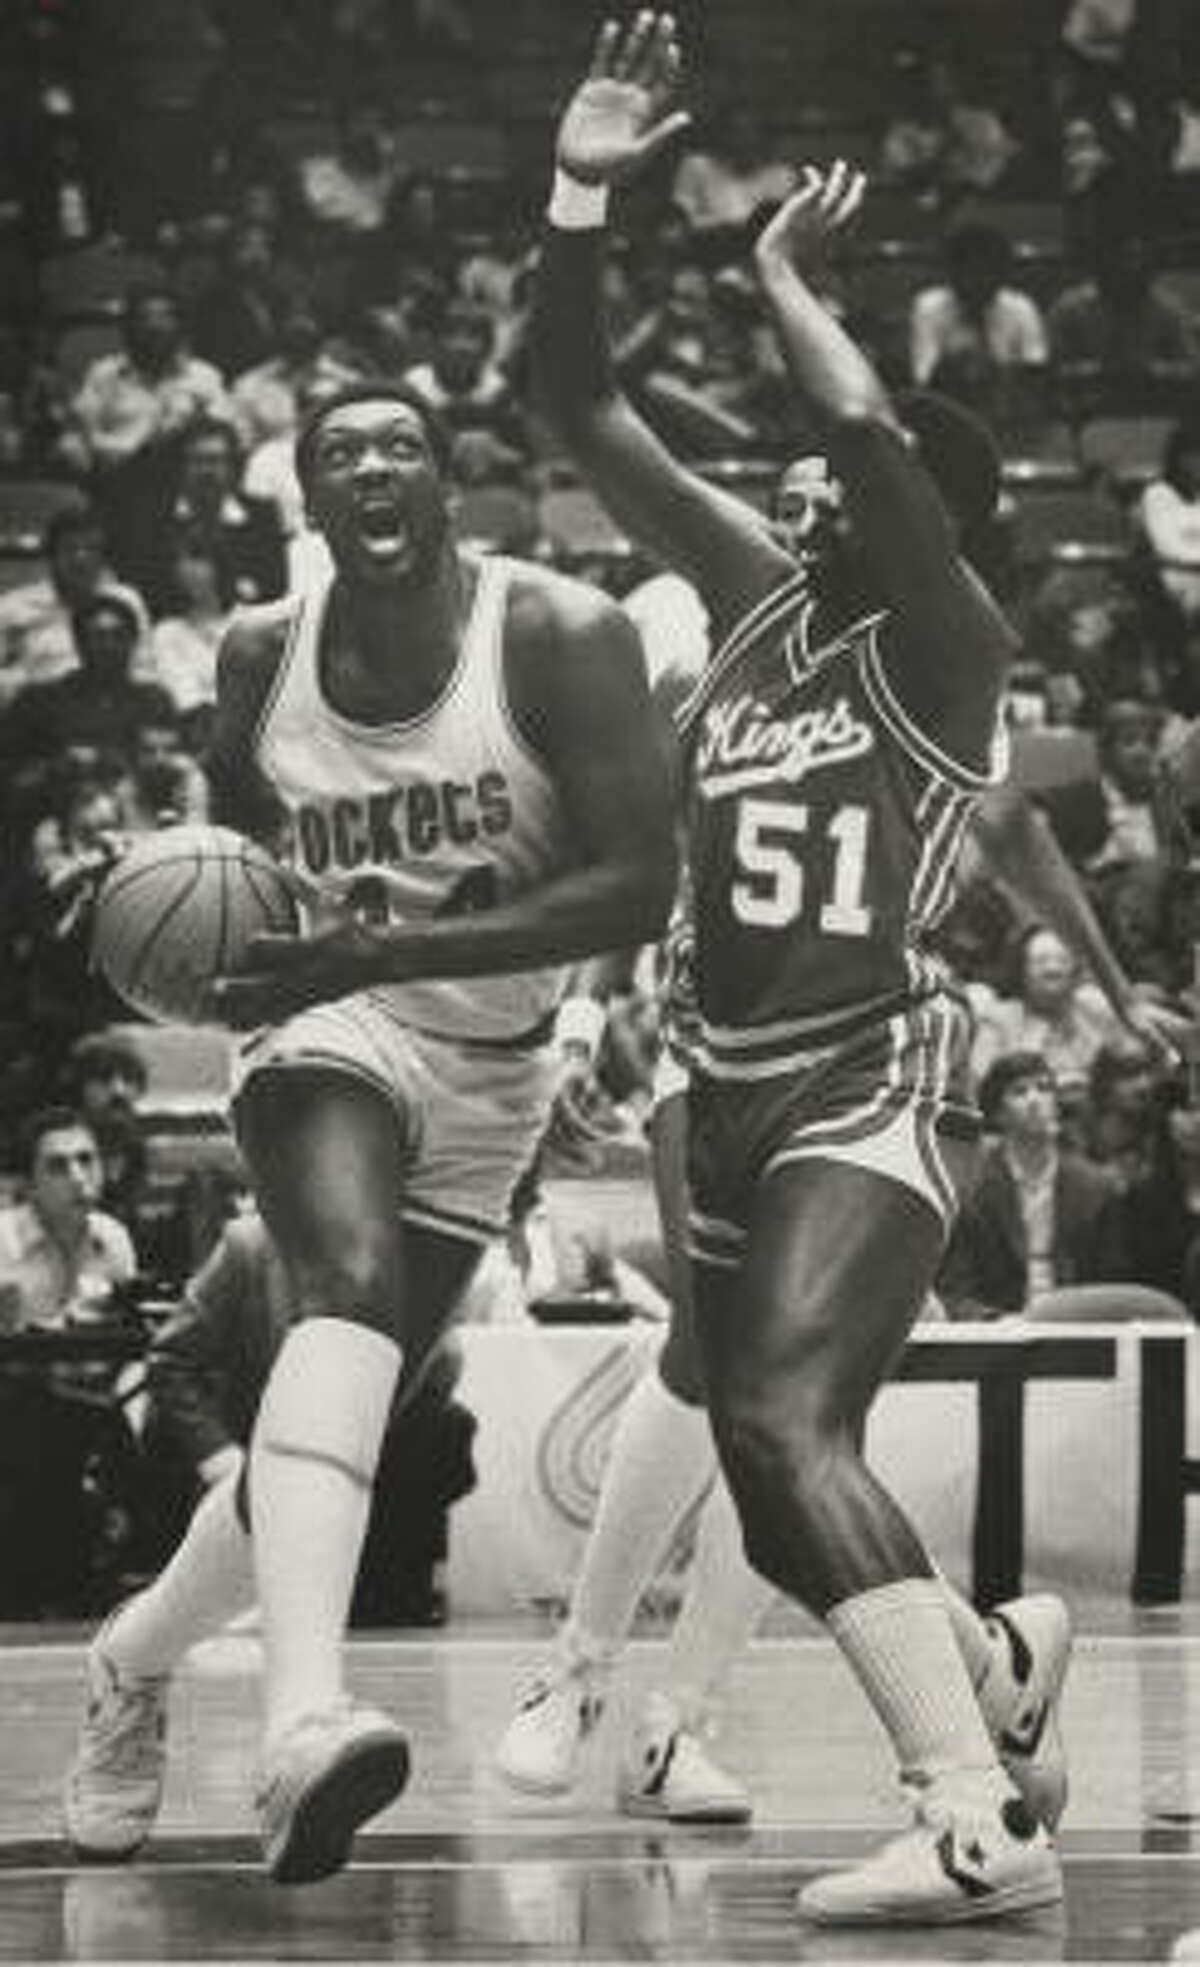 02/08/1983 -- Rockets v Kansas City Kings - Rockets #44 Elvin Hayes drives with eye on basket pass #51 Reggie King of the Kansas City Kings, Feb. 8, 1983 HOUCHRON CAPTION (02/09/1983): Elvin Hayes of the Rockets races past Kansas Citiy's Reggie King to score in Houston's 116-115 OT win Tuesday night.